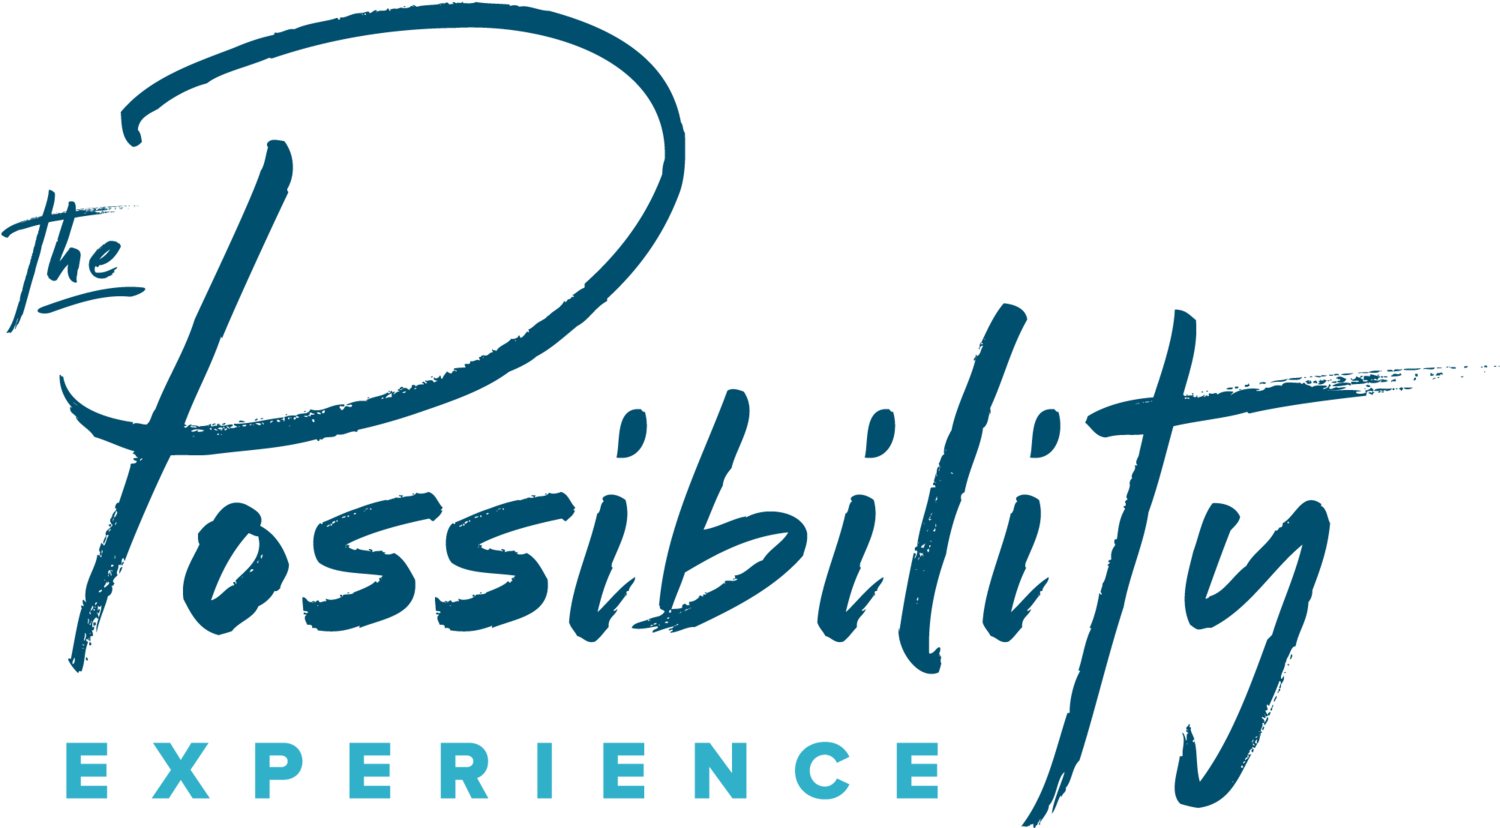 The Possibility Experience